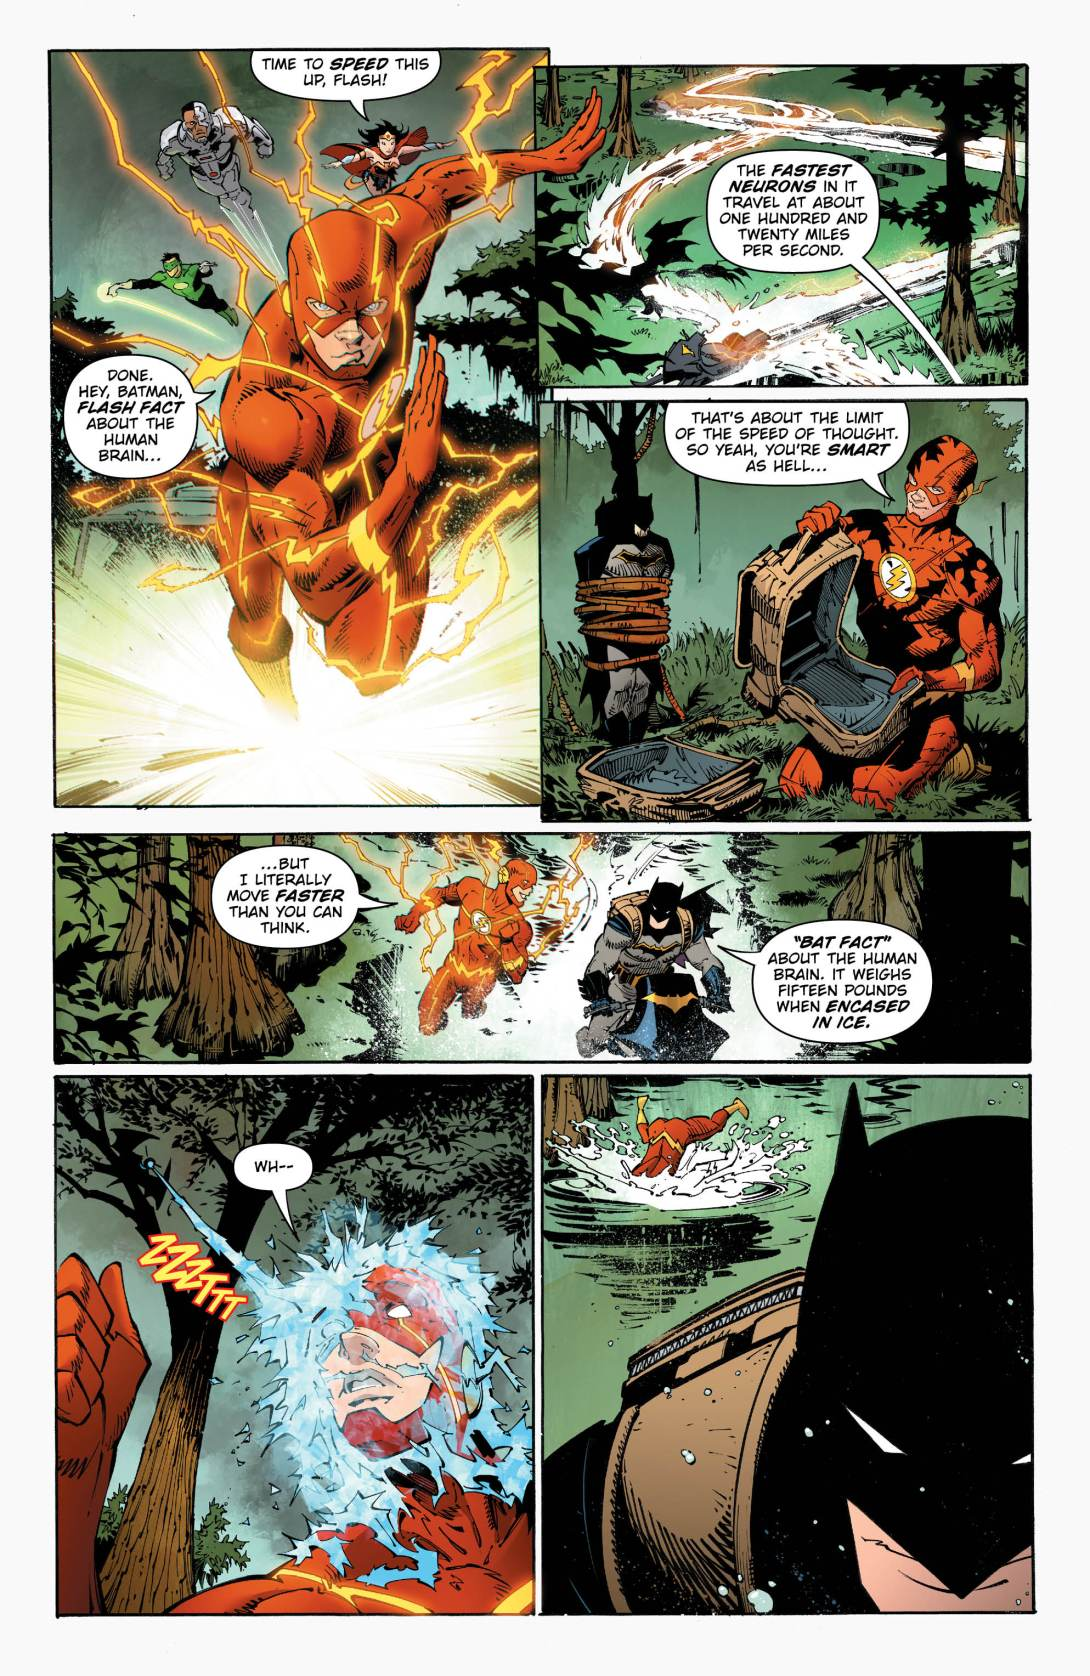 Metal 2 - Page 5 - DC Comics News